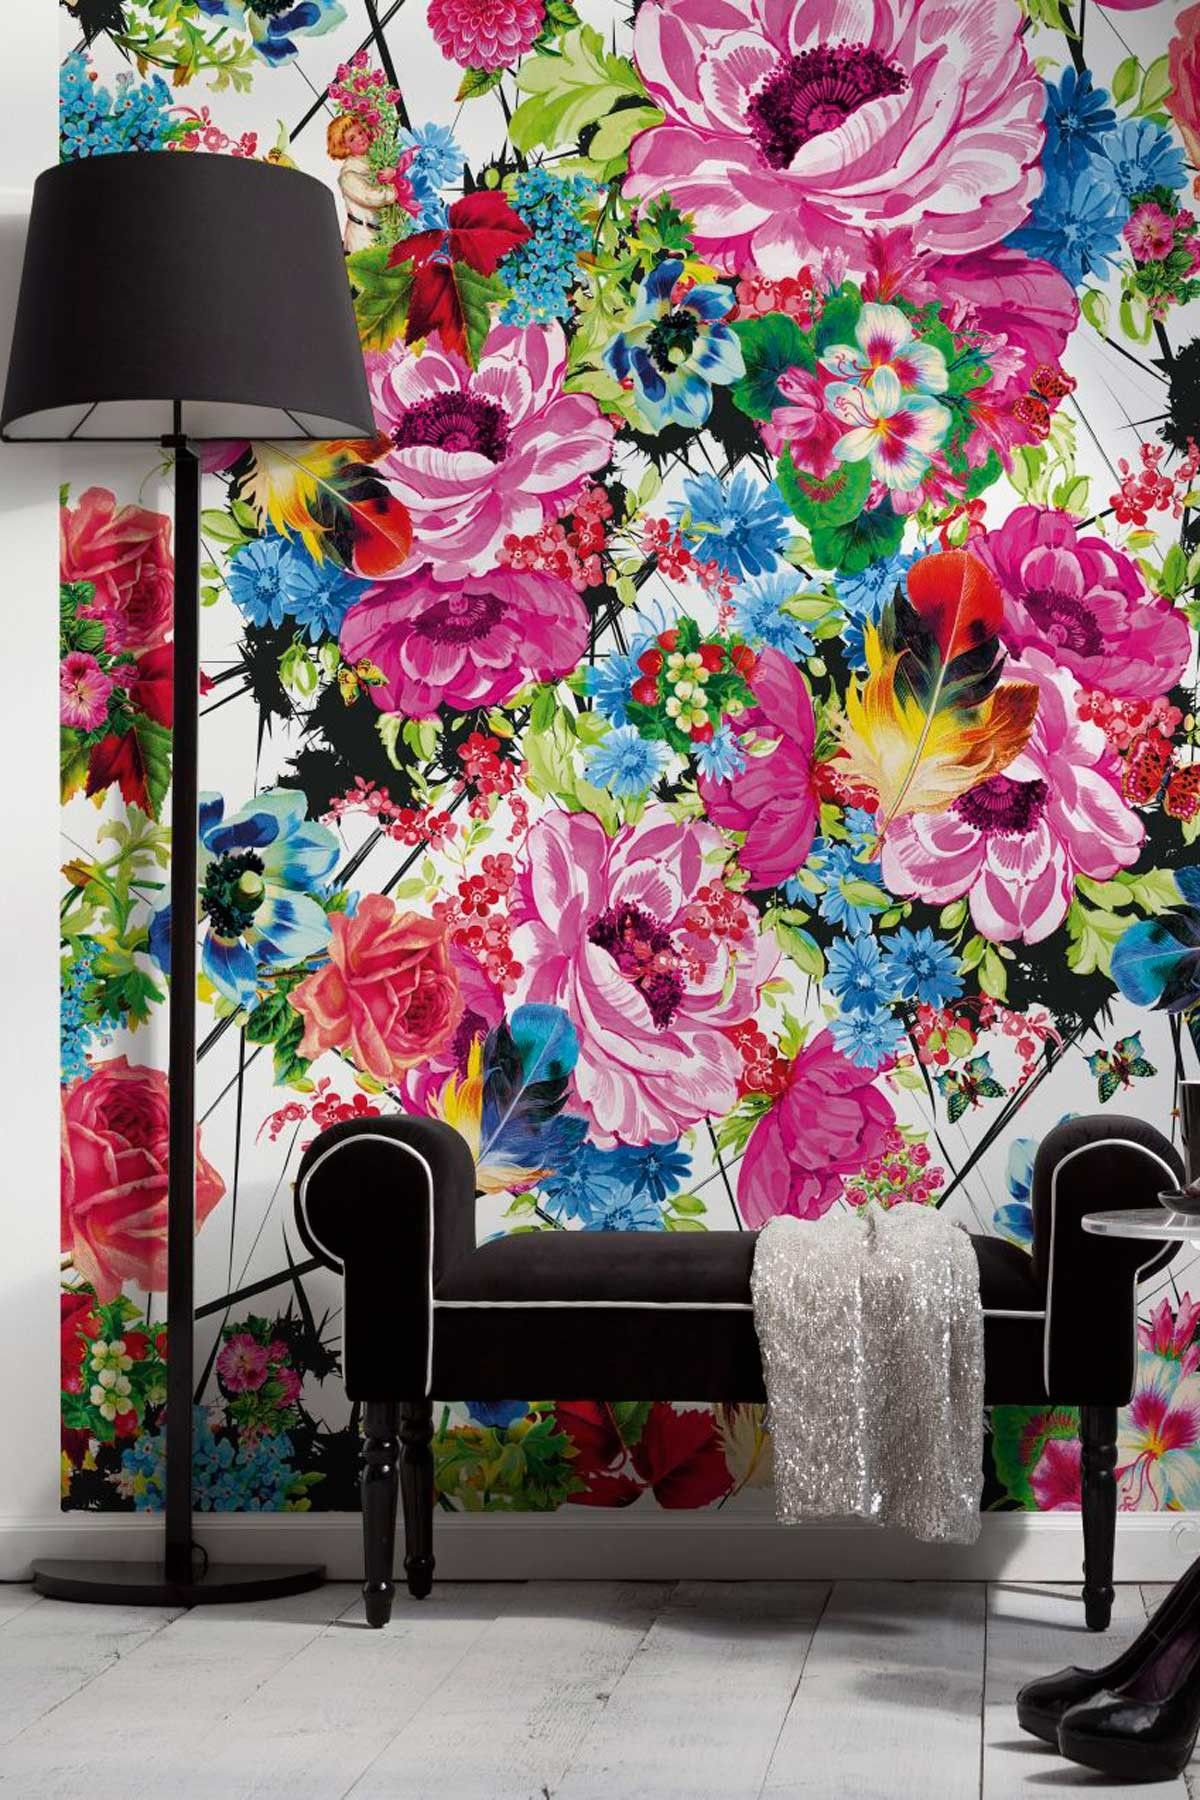 Wow! Love the large bold pink fuchsia flowers mixed with